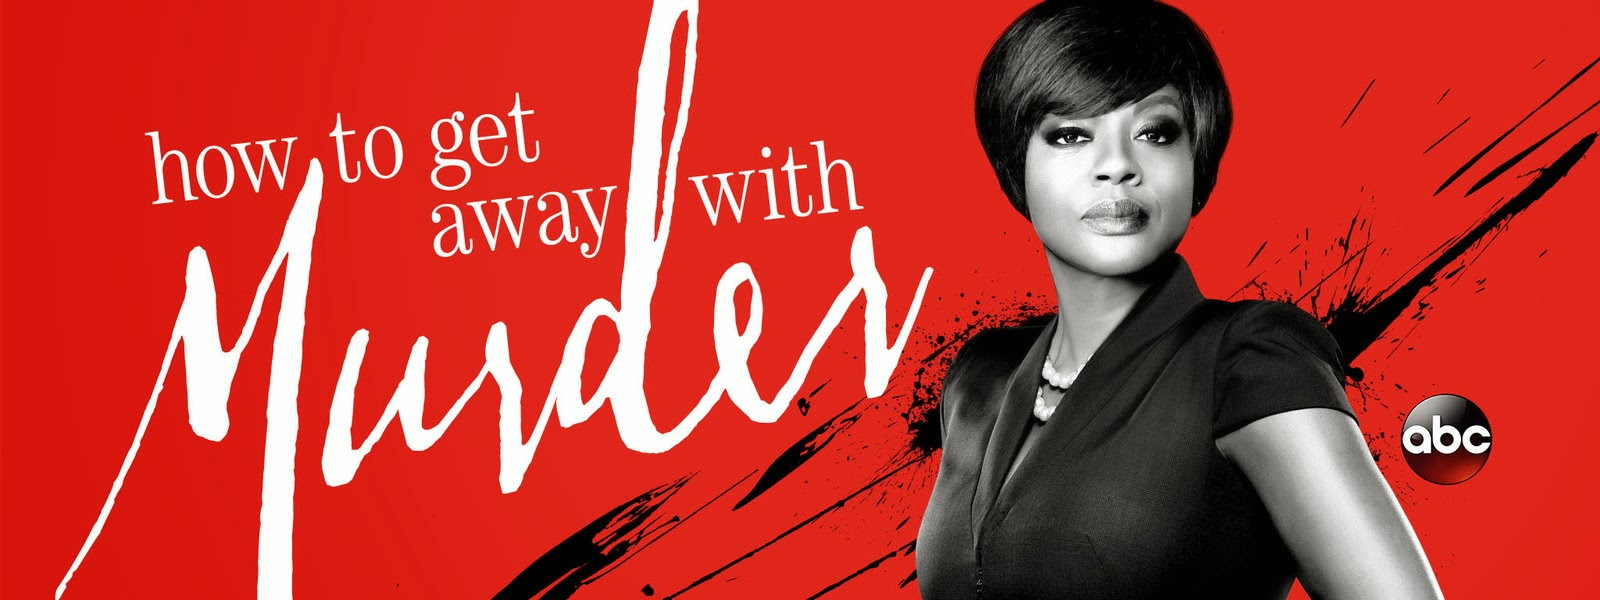 I am michael hear me rohrer january 2015 how to get away with murder returns and the crazy is crazy good ccuart Image collections